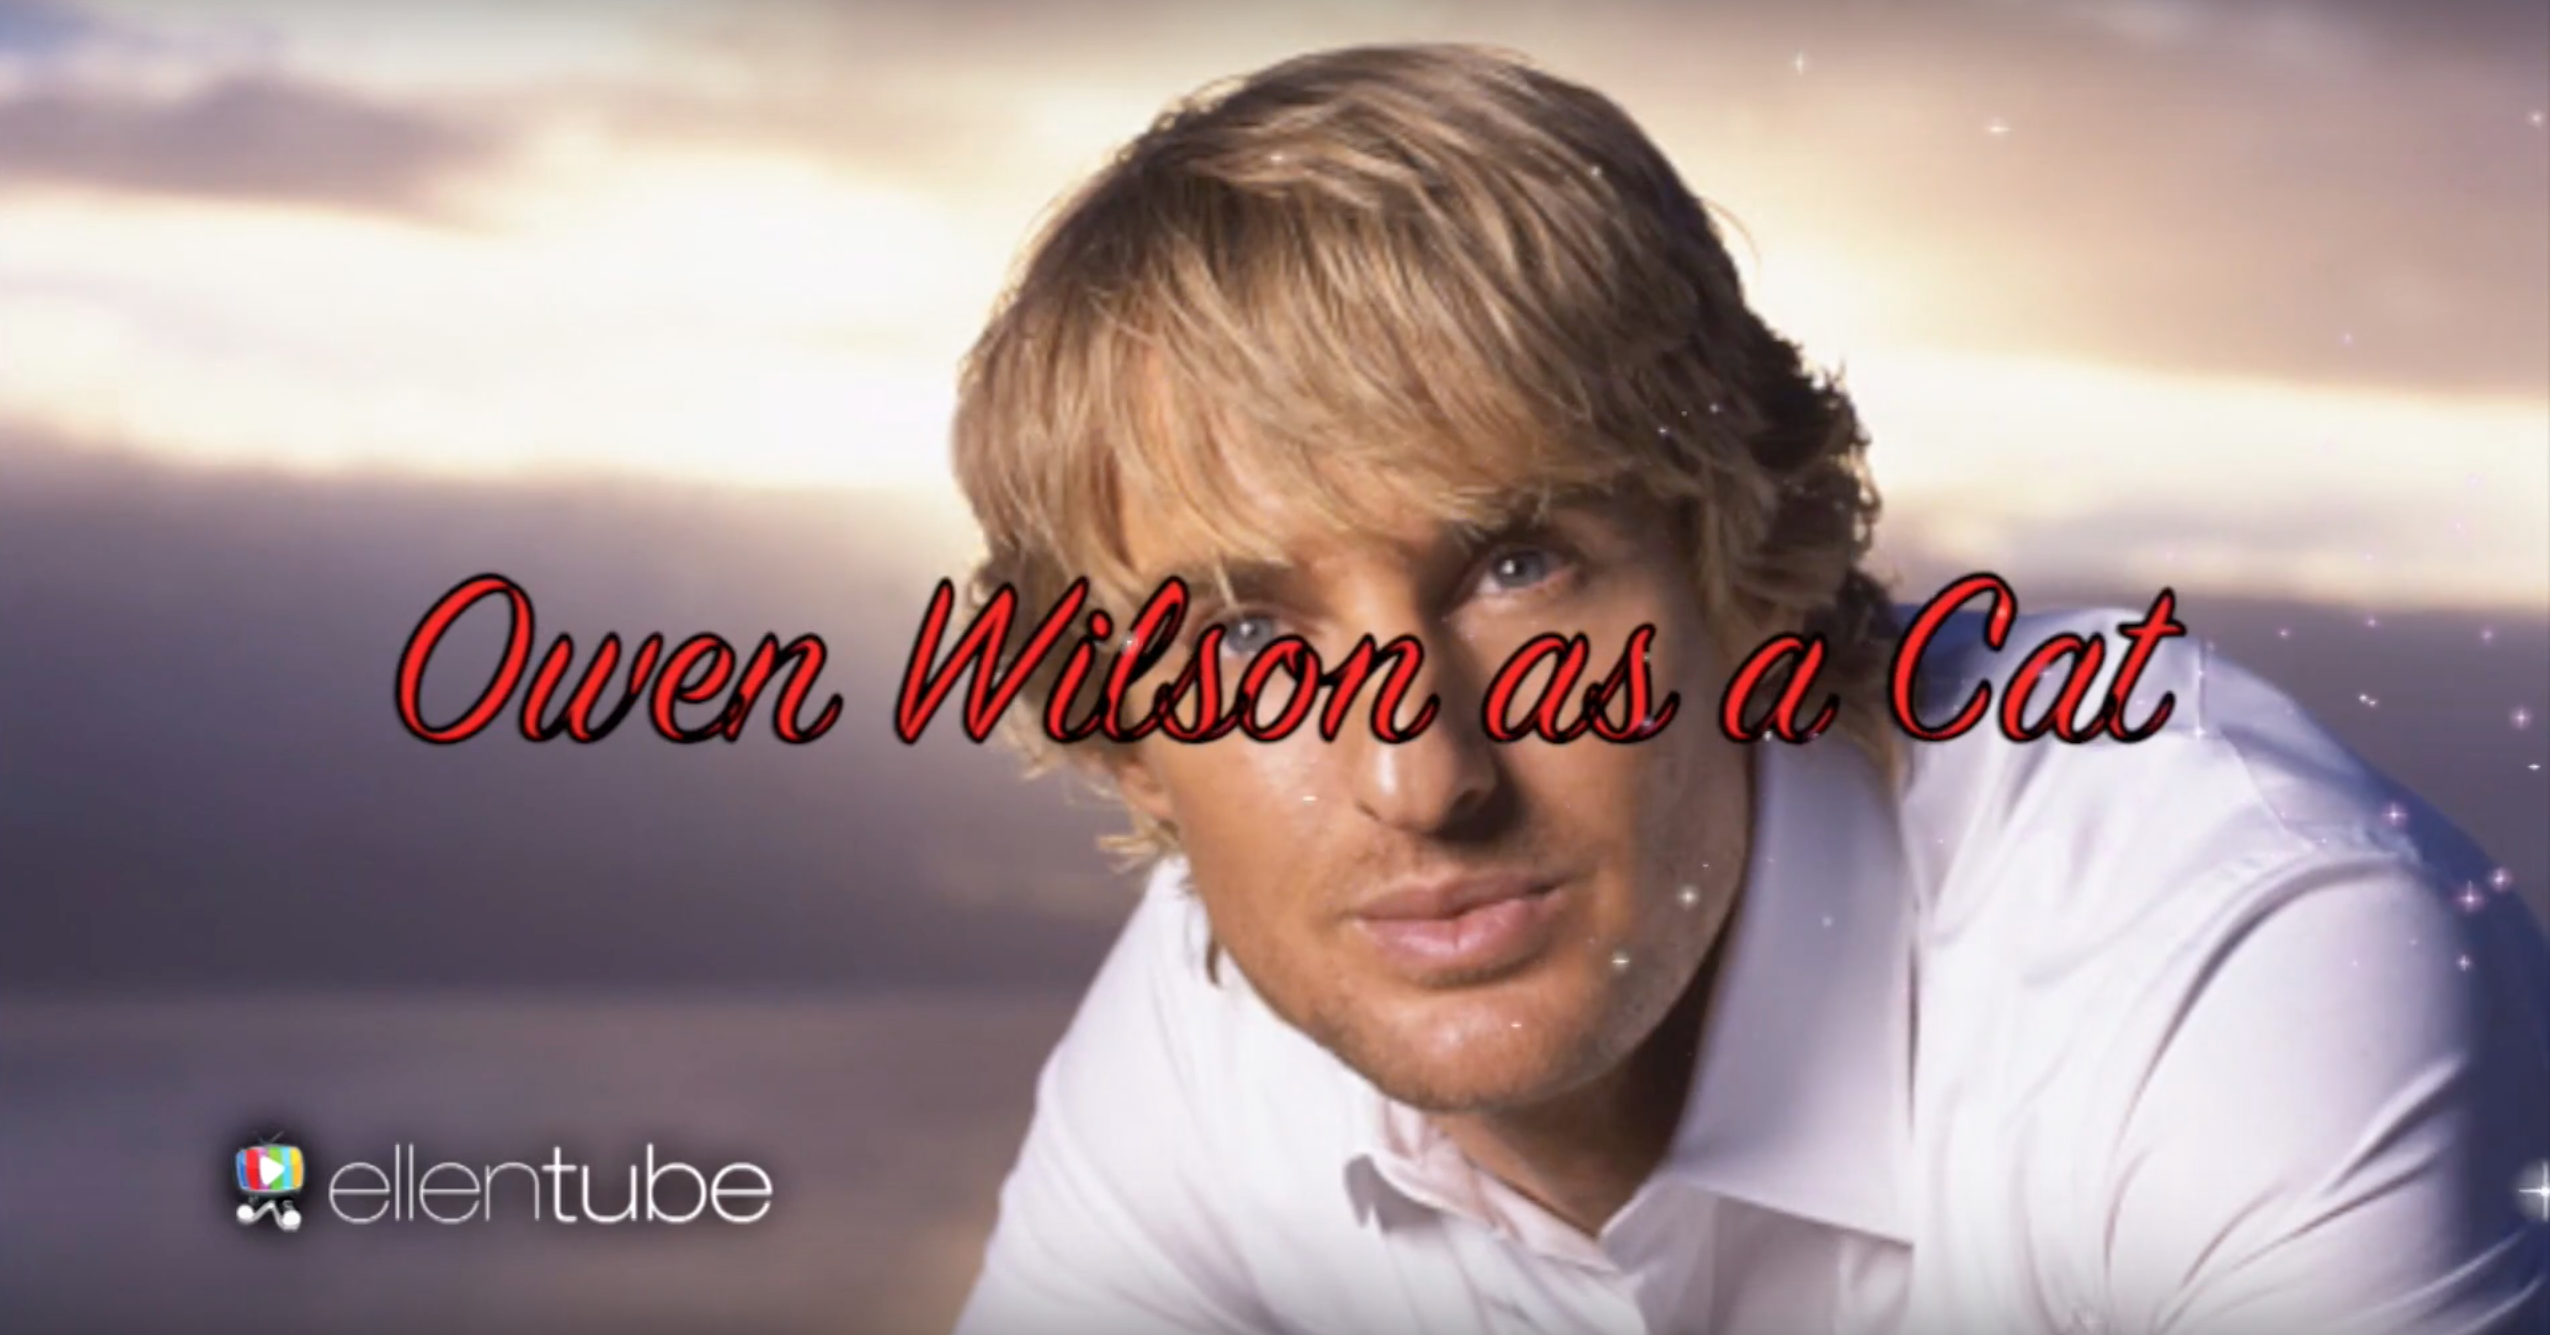 Wow: Owen Wilson as a cat